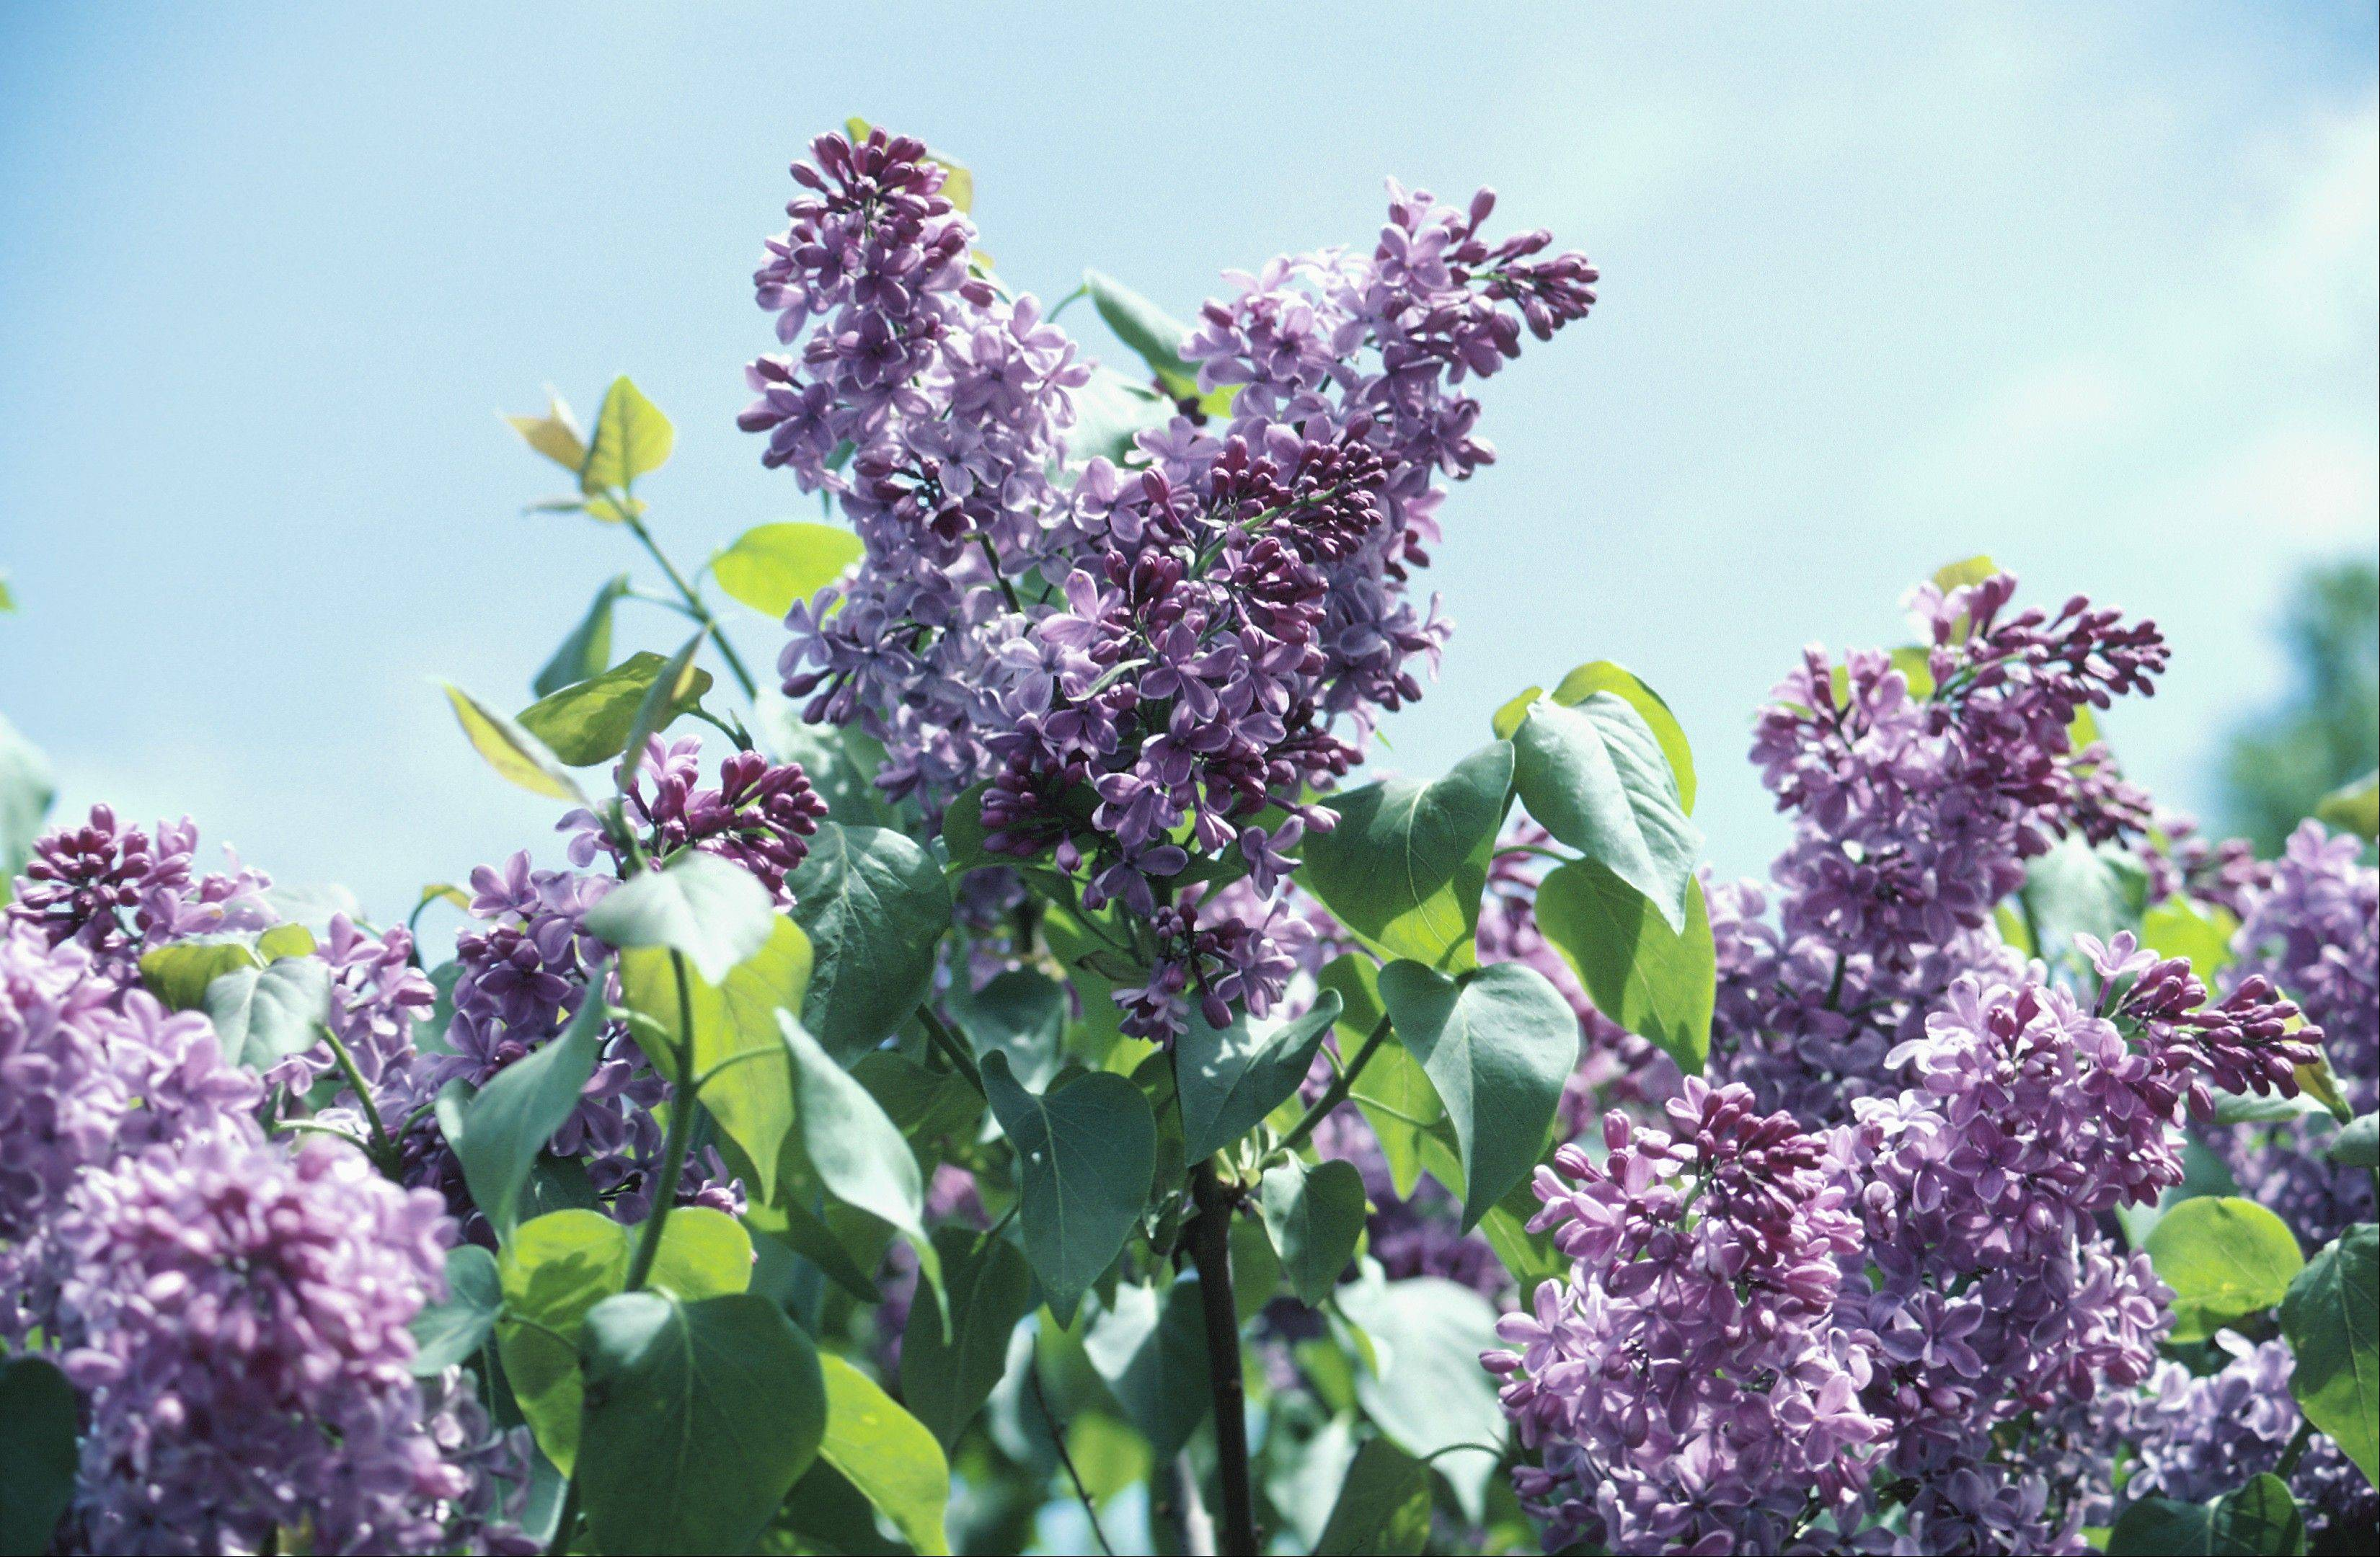 Lilac Time in Lombard features 800 lilacs of several varieties on display at Lilacia Park, where a few dozen community activities are scheduled from May 4-19.